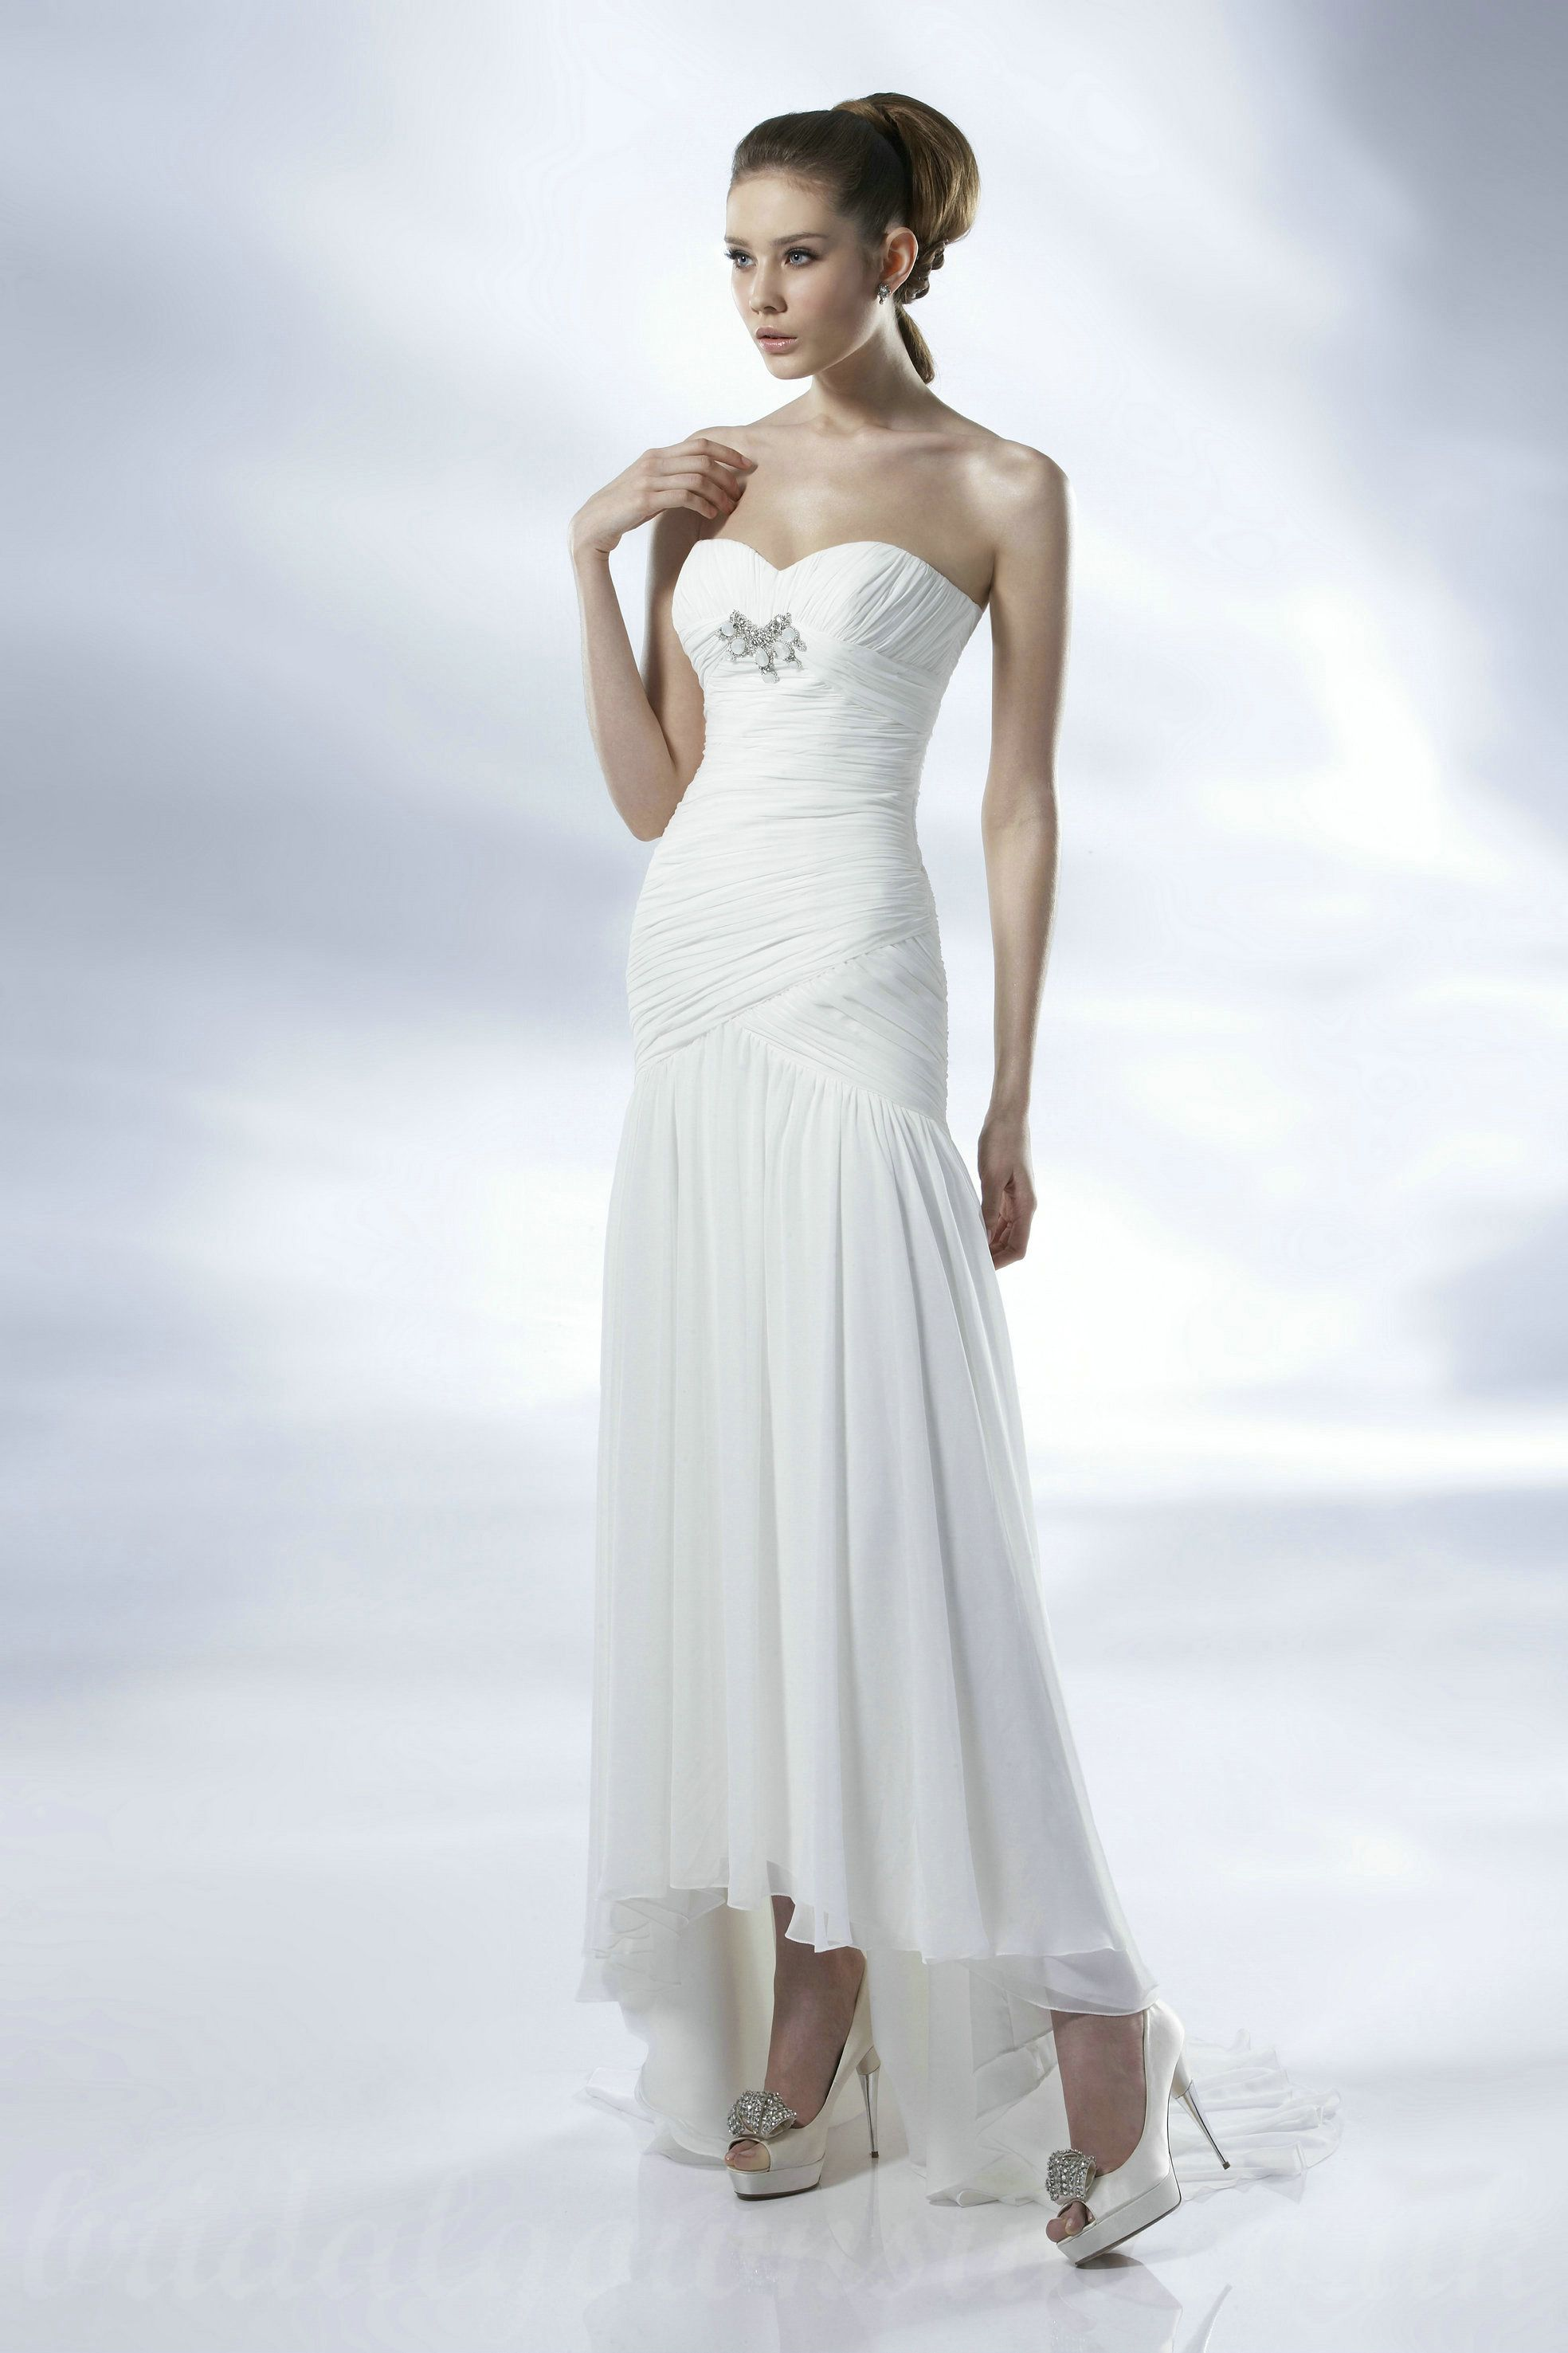 cheap-affordable-wedding-dresses-design-ideas | Fashion ...